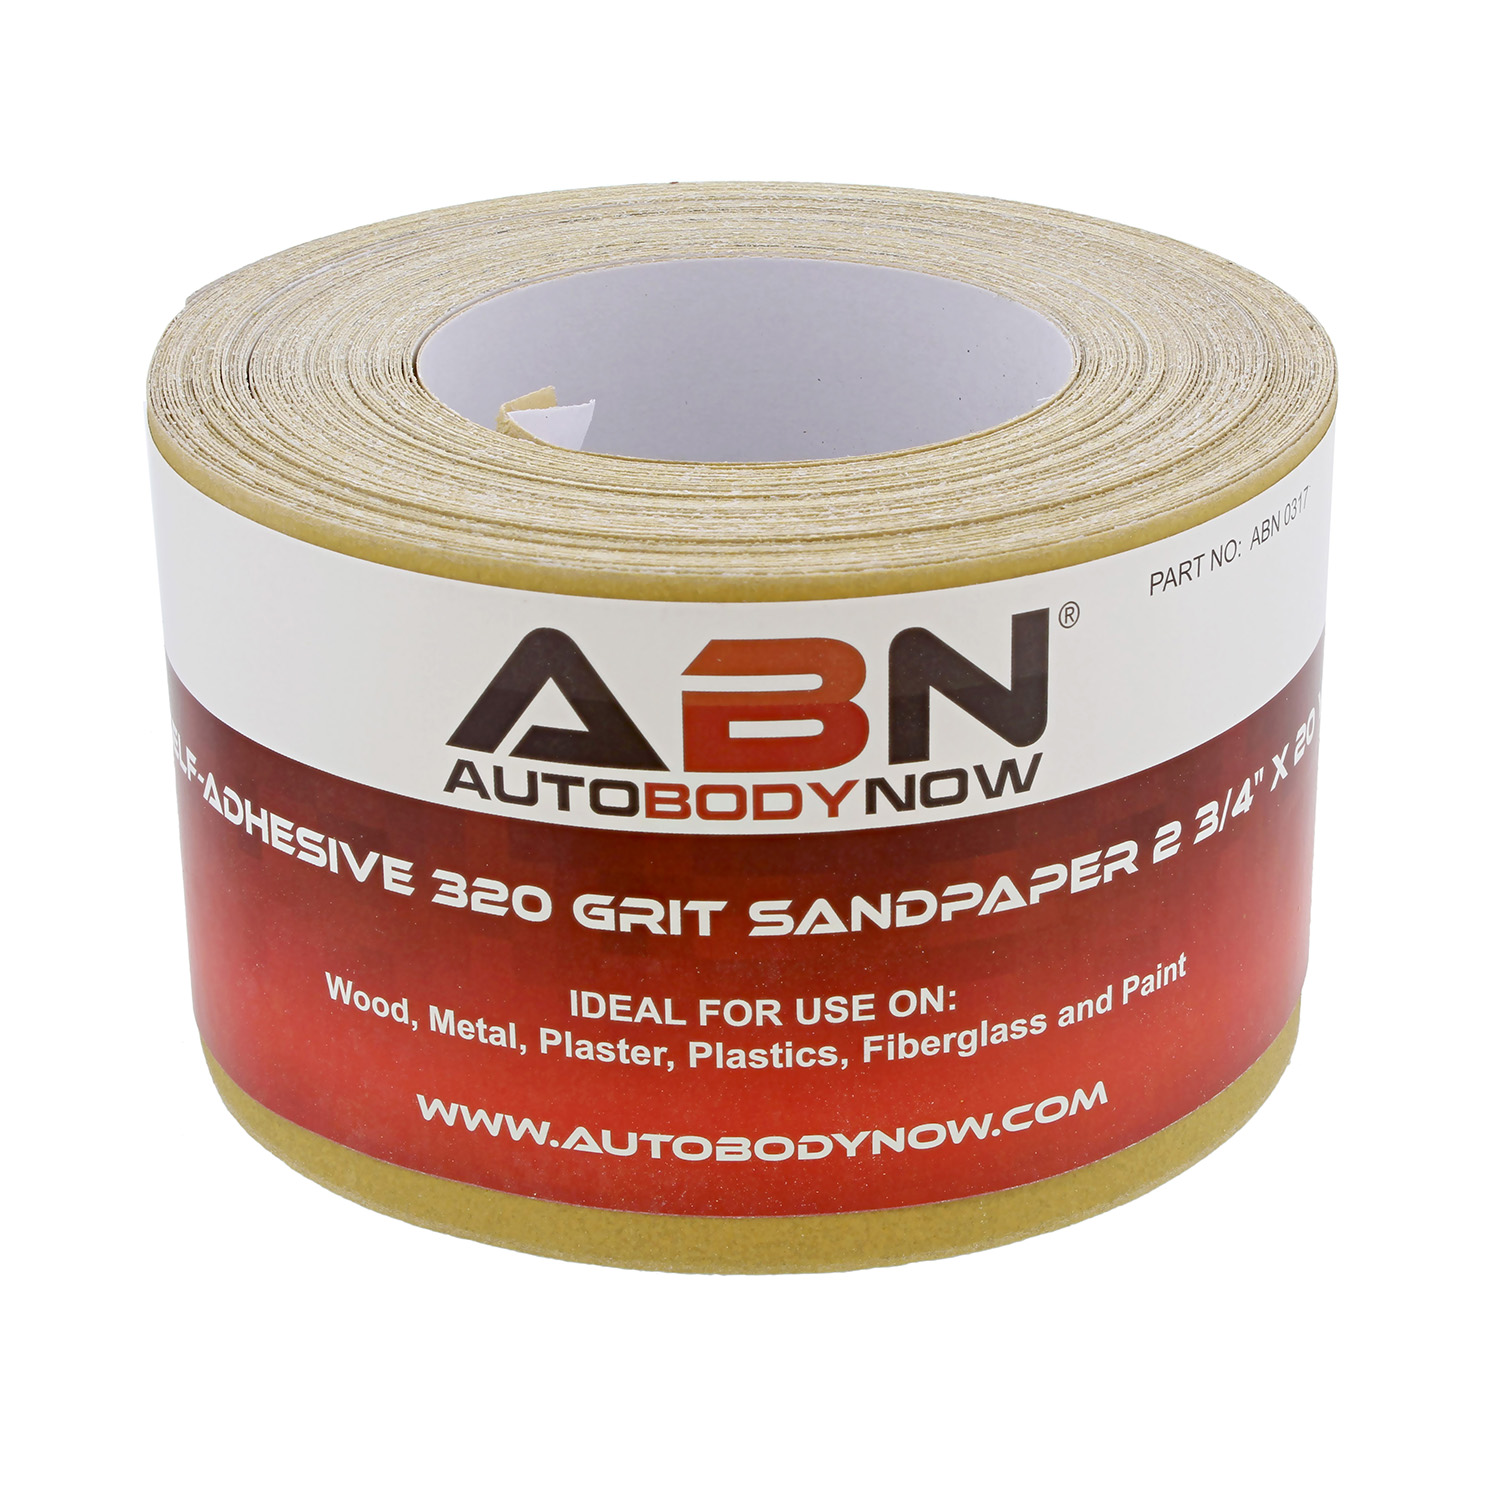 ABN-Adhesive-Sandpaper-Roll-2-3-4-Inch-x-20-Yards-Aluminum-Oxide-PSA thumbnail 28